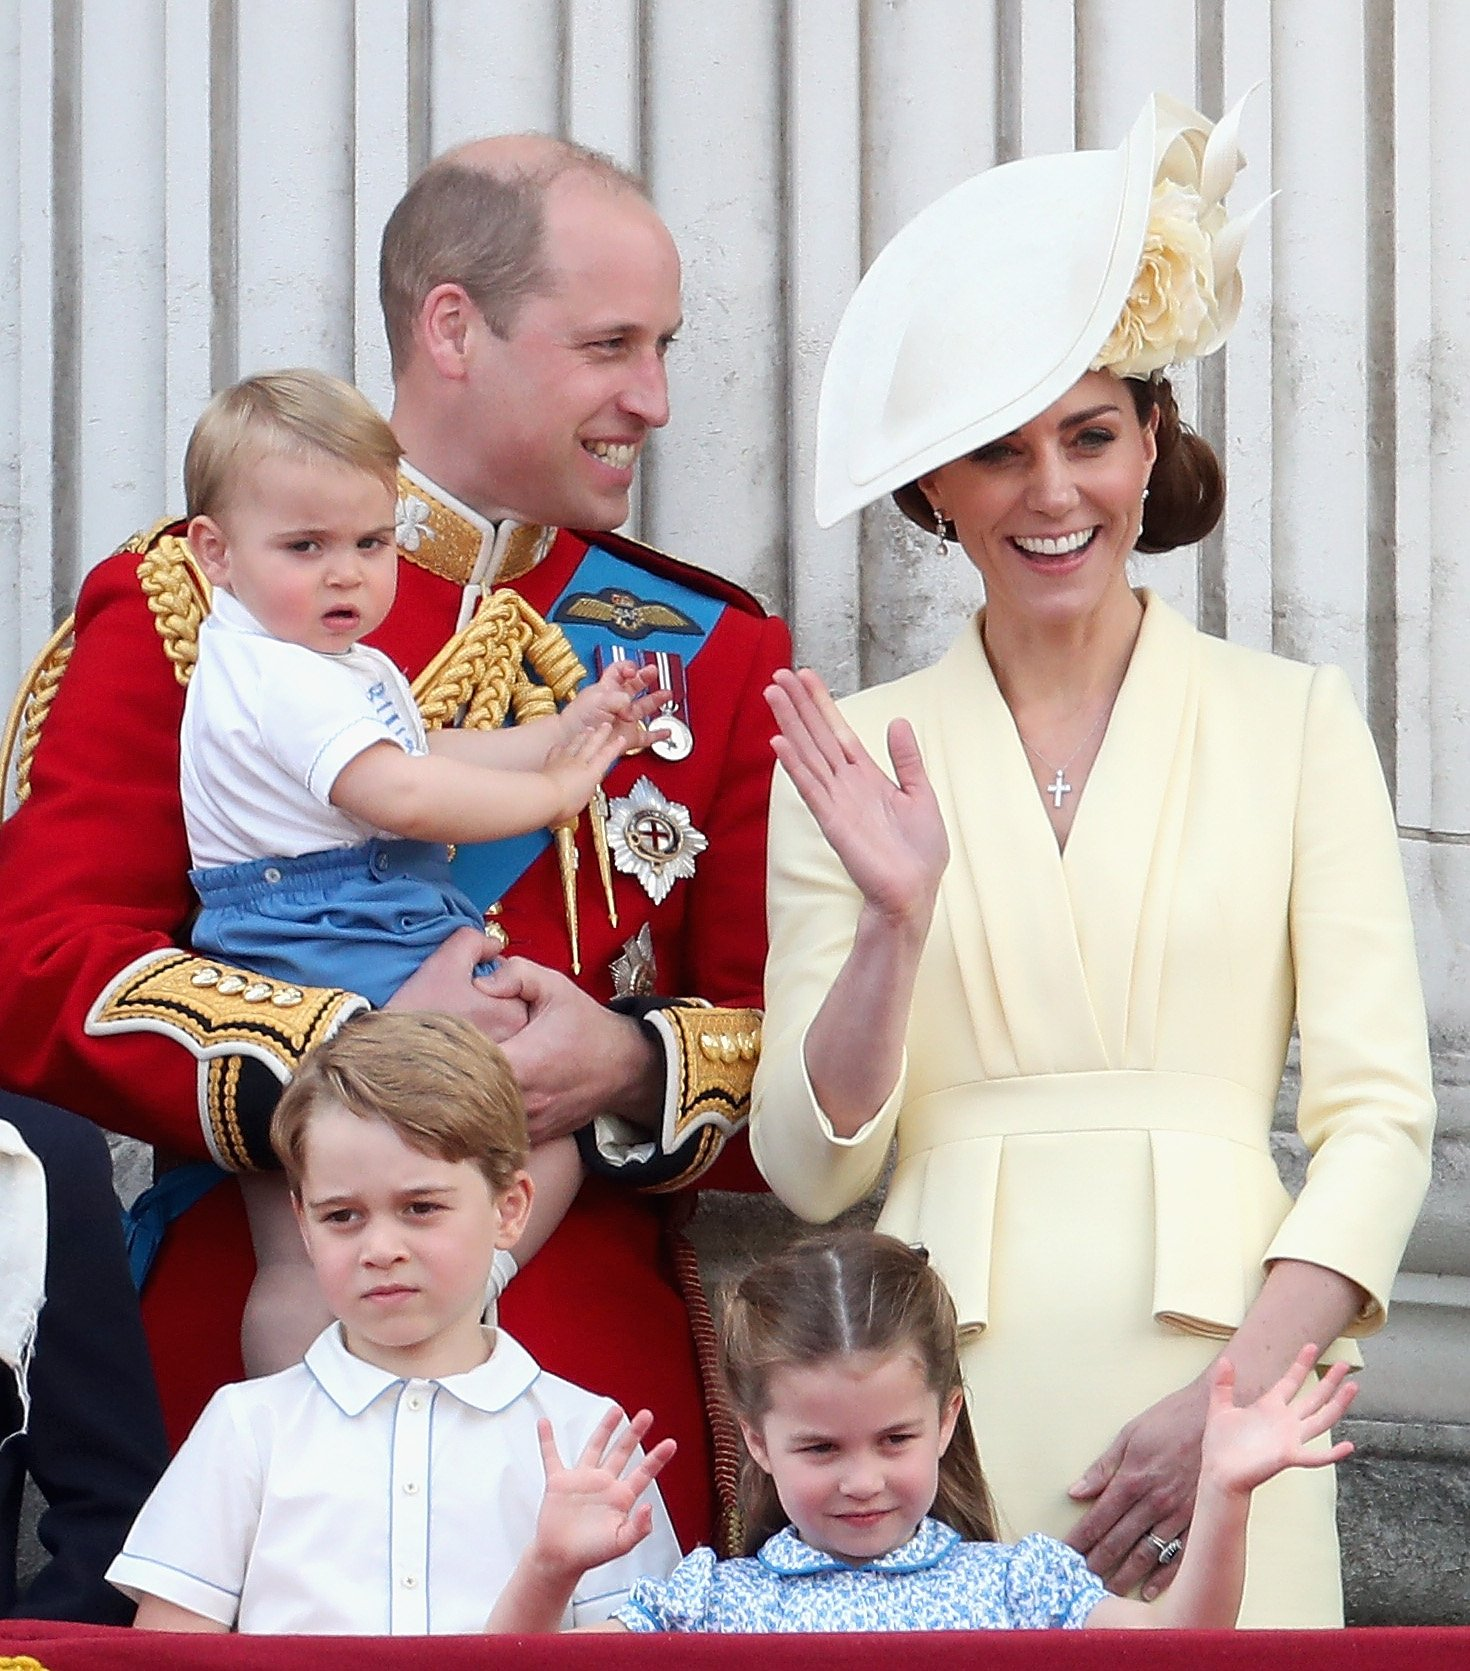 Prince William, Kate Middleton, Prince Louis, Prince George, and Princess Charlotte during Trooping The Colour on June 8, 2019 in London, England. | Photo: GettyImages